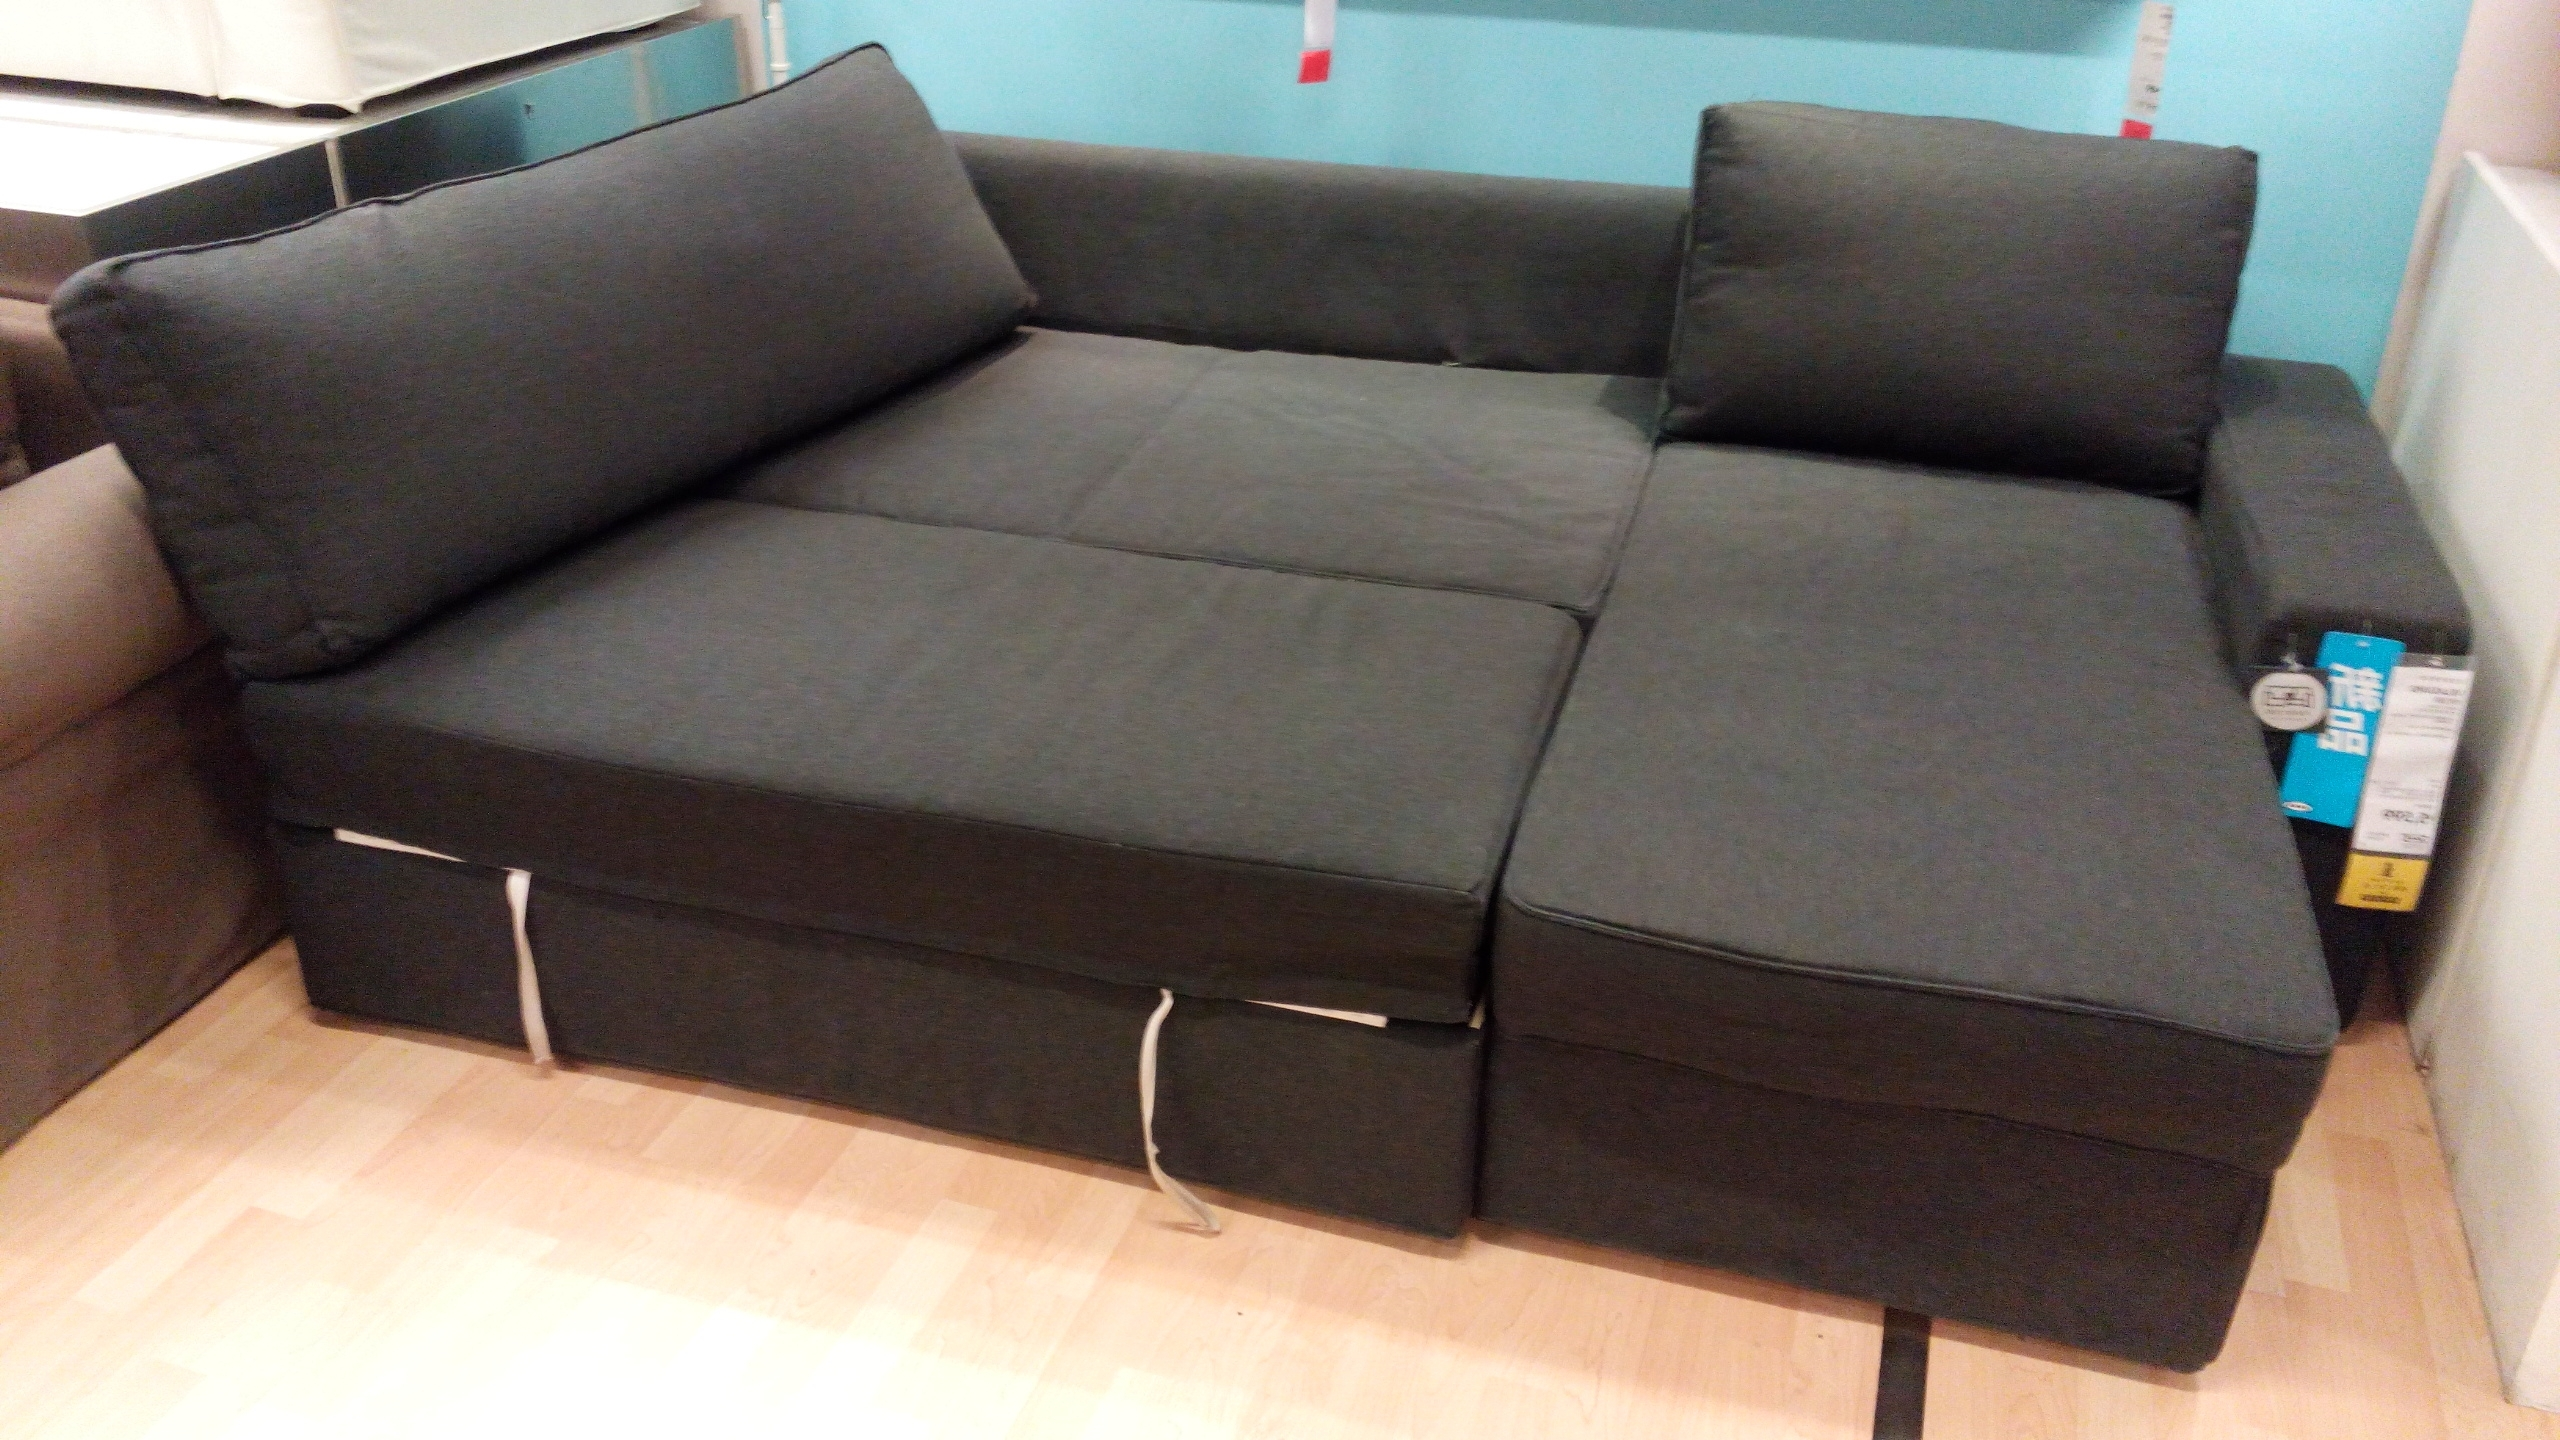 Chaise Sofa Beds For Well Known Ikea Vilasund And Backabro Review – Return Of The Sofa Bed Clones! (View 4 of 15)